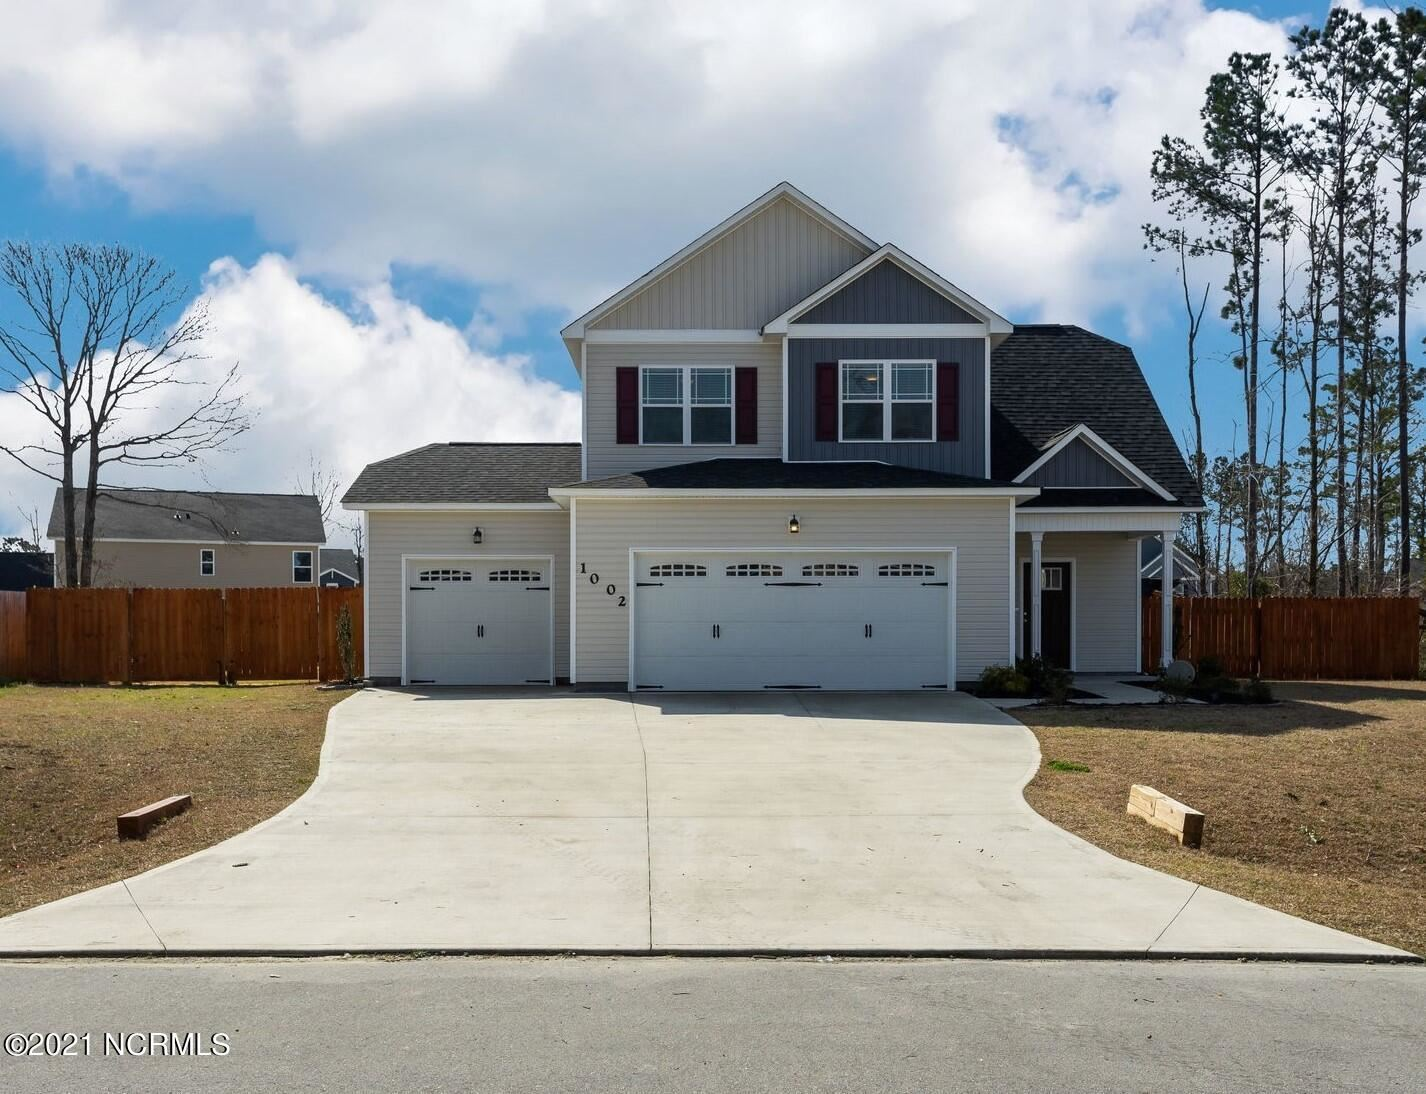 Photo of 1002 Bison Trail, Jacksonville, NC 28546 (MLS # 100288973)